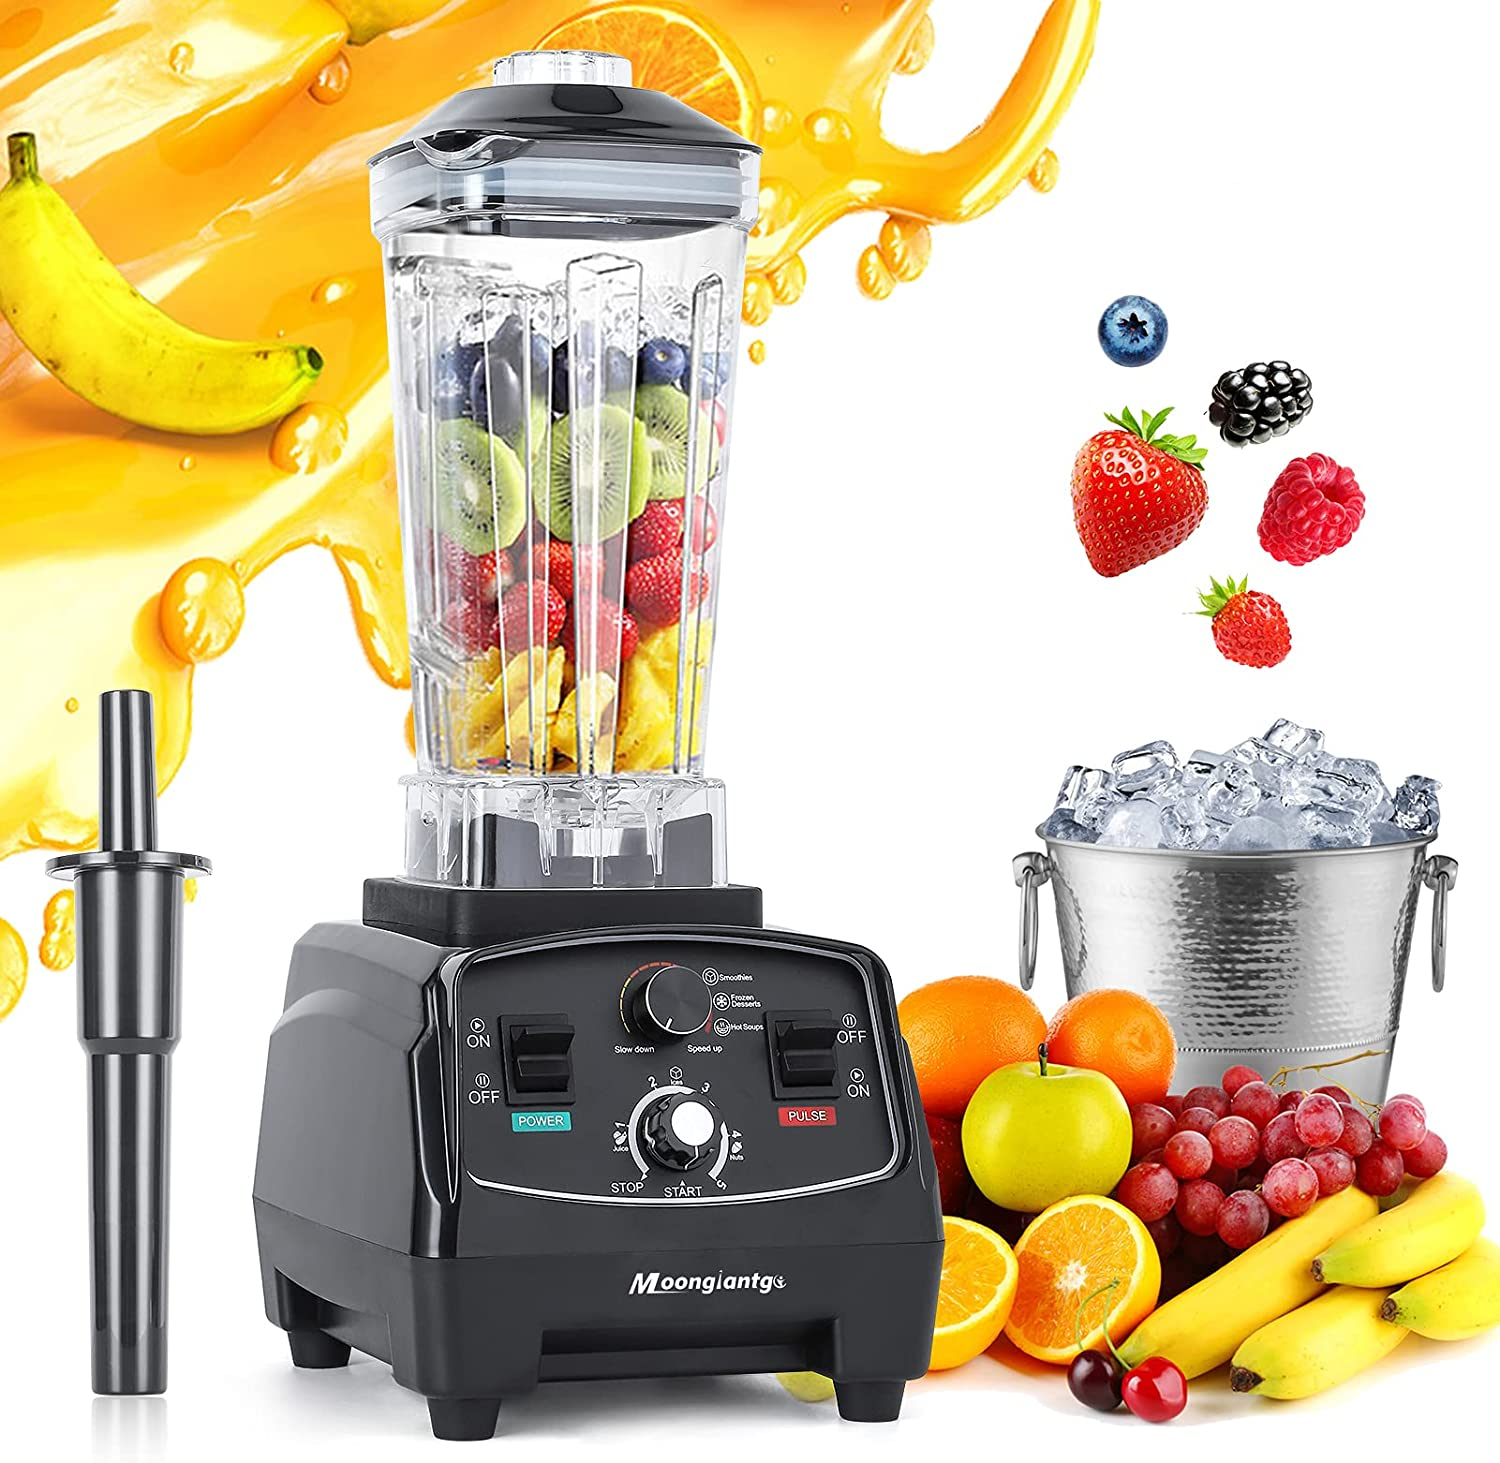 Moongiantgo Professional Blender 2200W Countertop Blender for Shakes and Smoothies 48000RPM High Speed Blender with Timer for Kitchen Ice Frozen Fruit Nut Butter Home Commercial Use (Black, 110V)